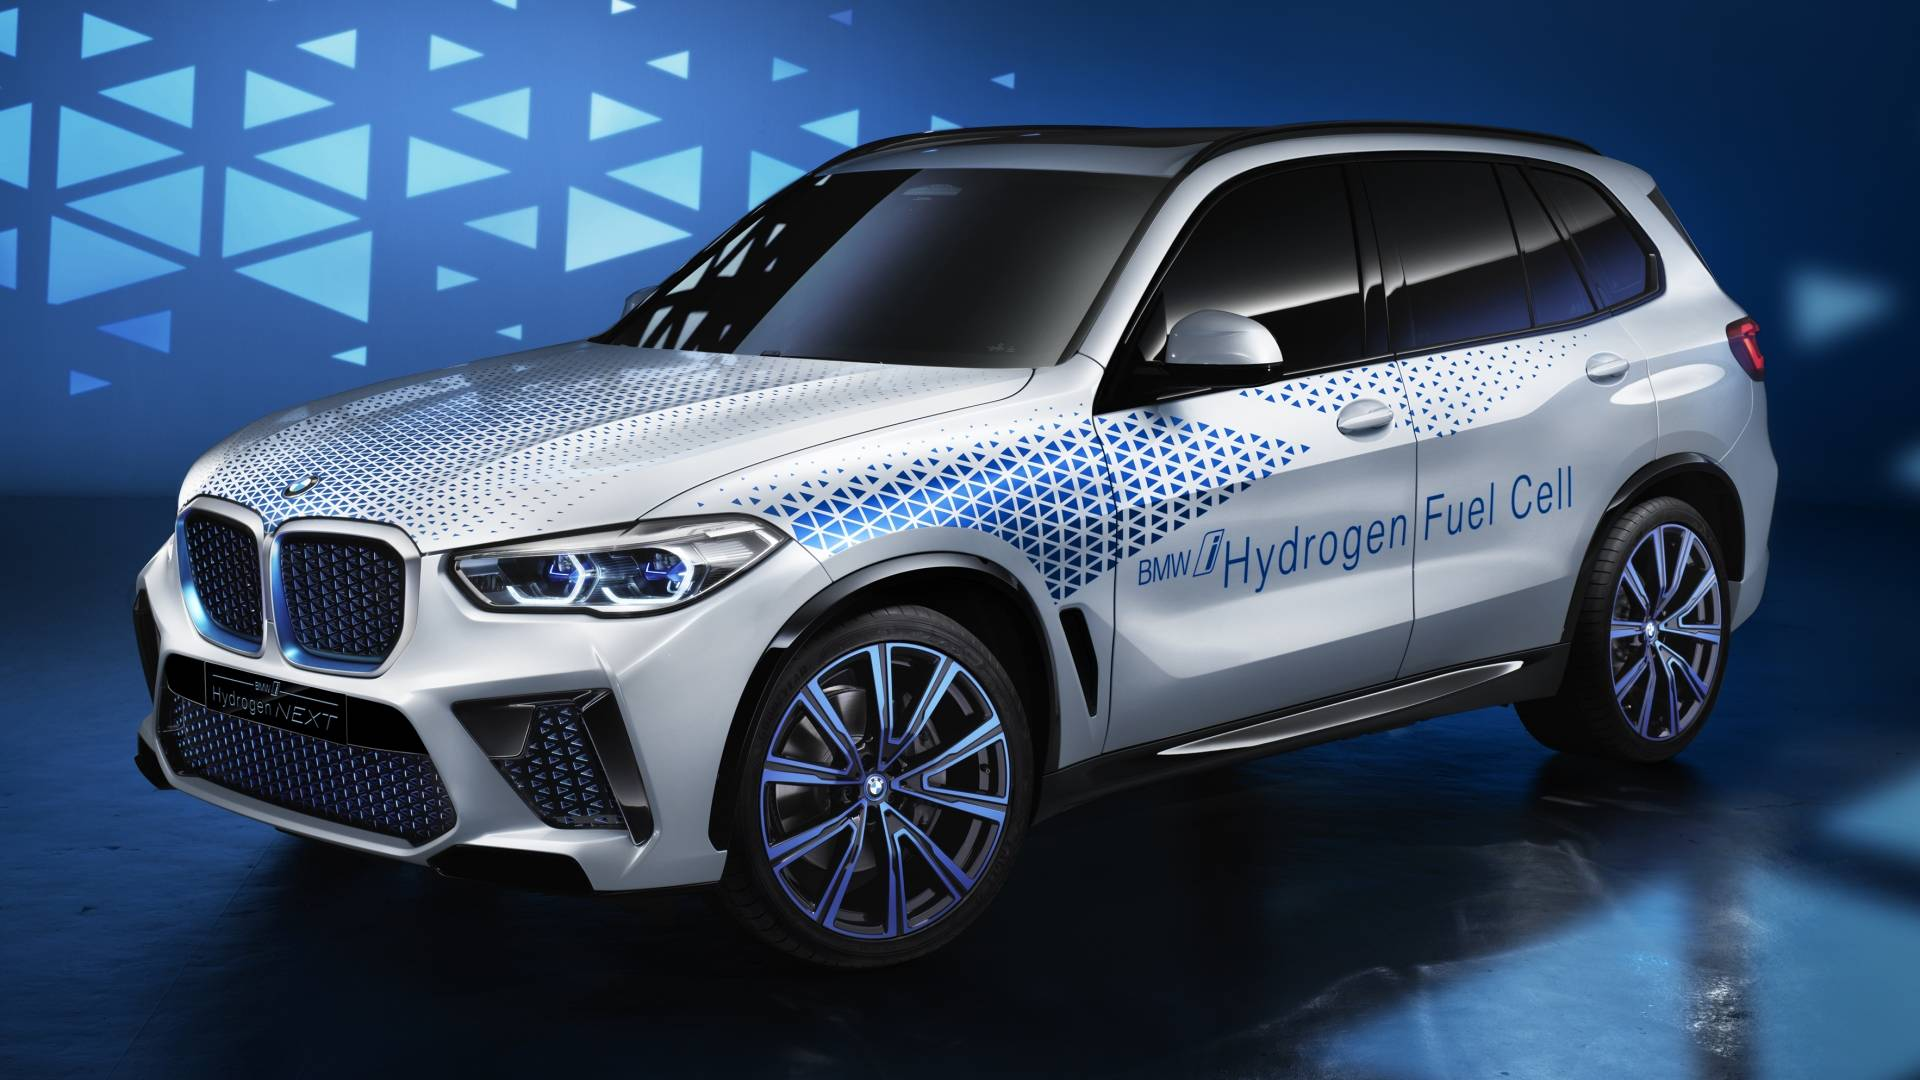 2021 Next Gen BMW X5 Suv Price, Design and Review